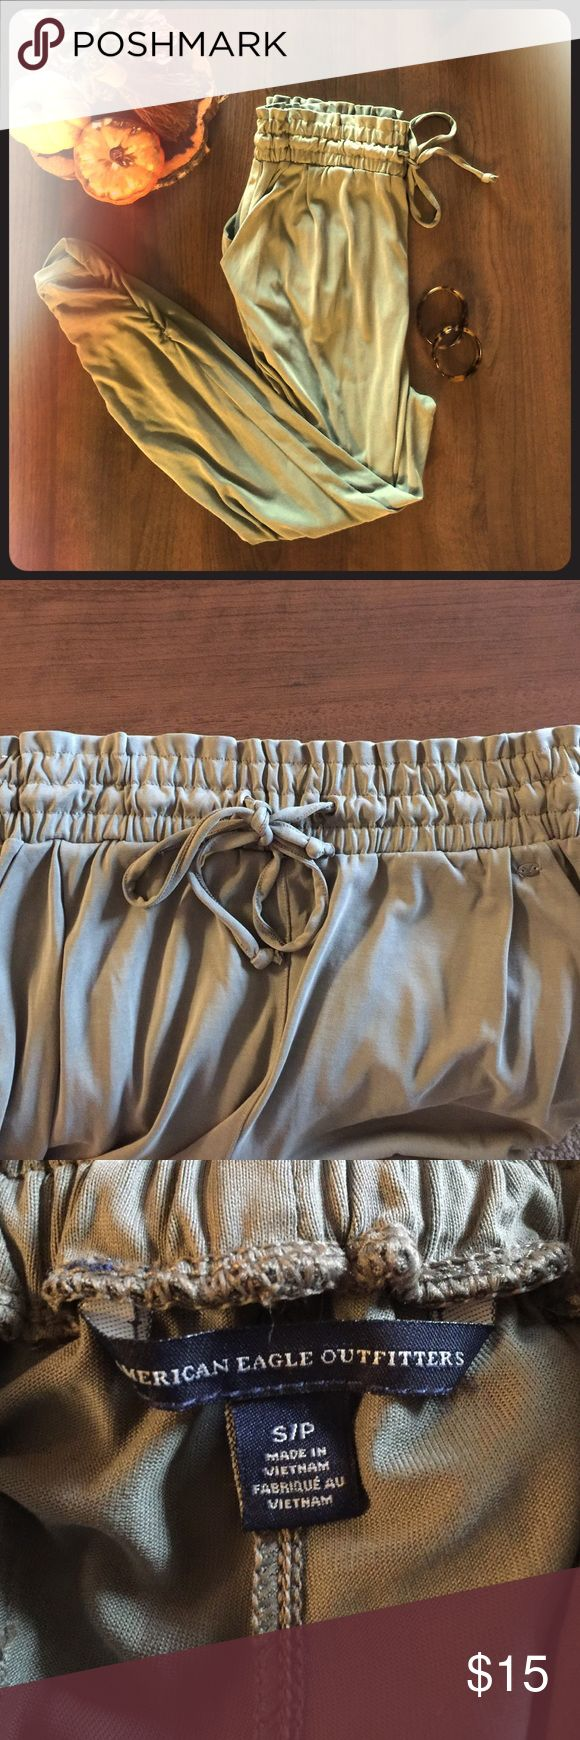 Army Green Joggers These are the most comfortable pants you can wear. Pair them with a cute pair of flats and a white tee for a day on the town. American Eagle Outfitters Pants Track Pants & Joggers